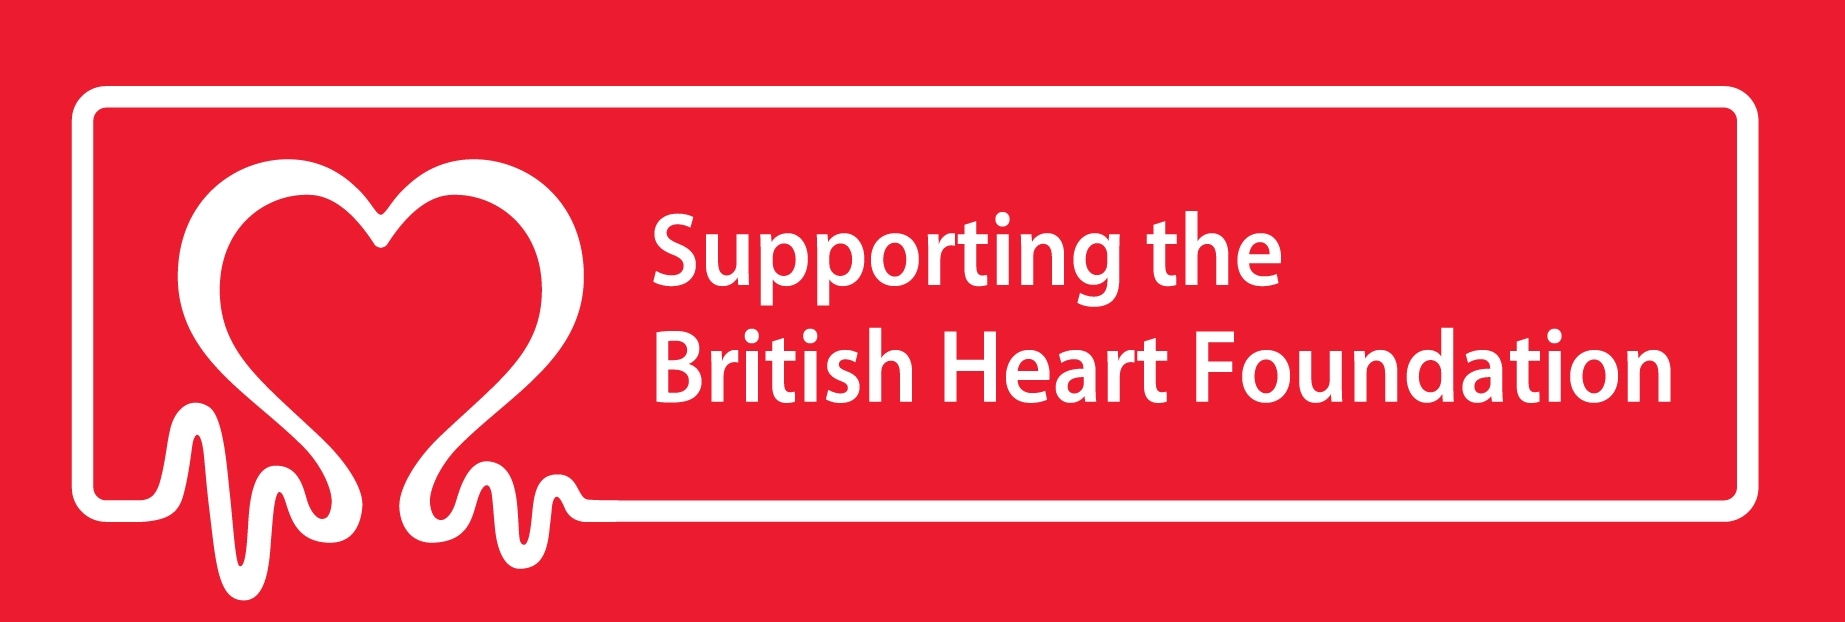 Oak Tree Mobility in support of the British Heart Foundation